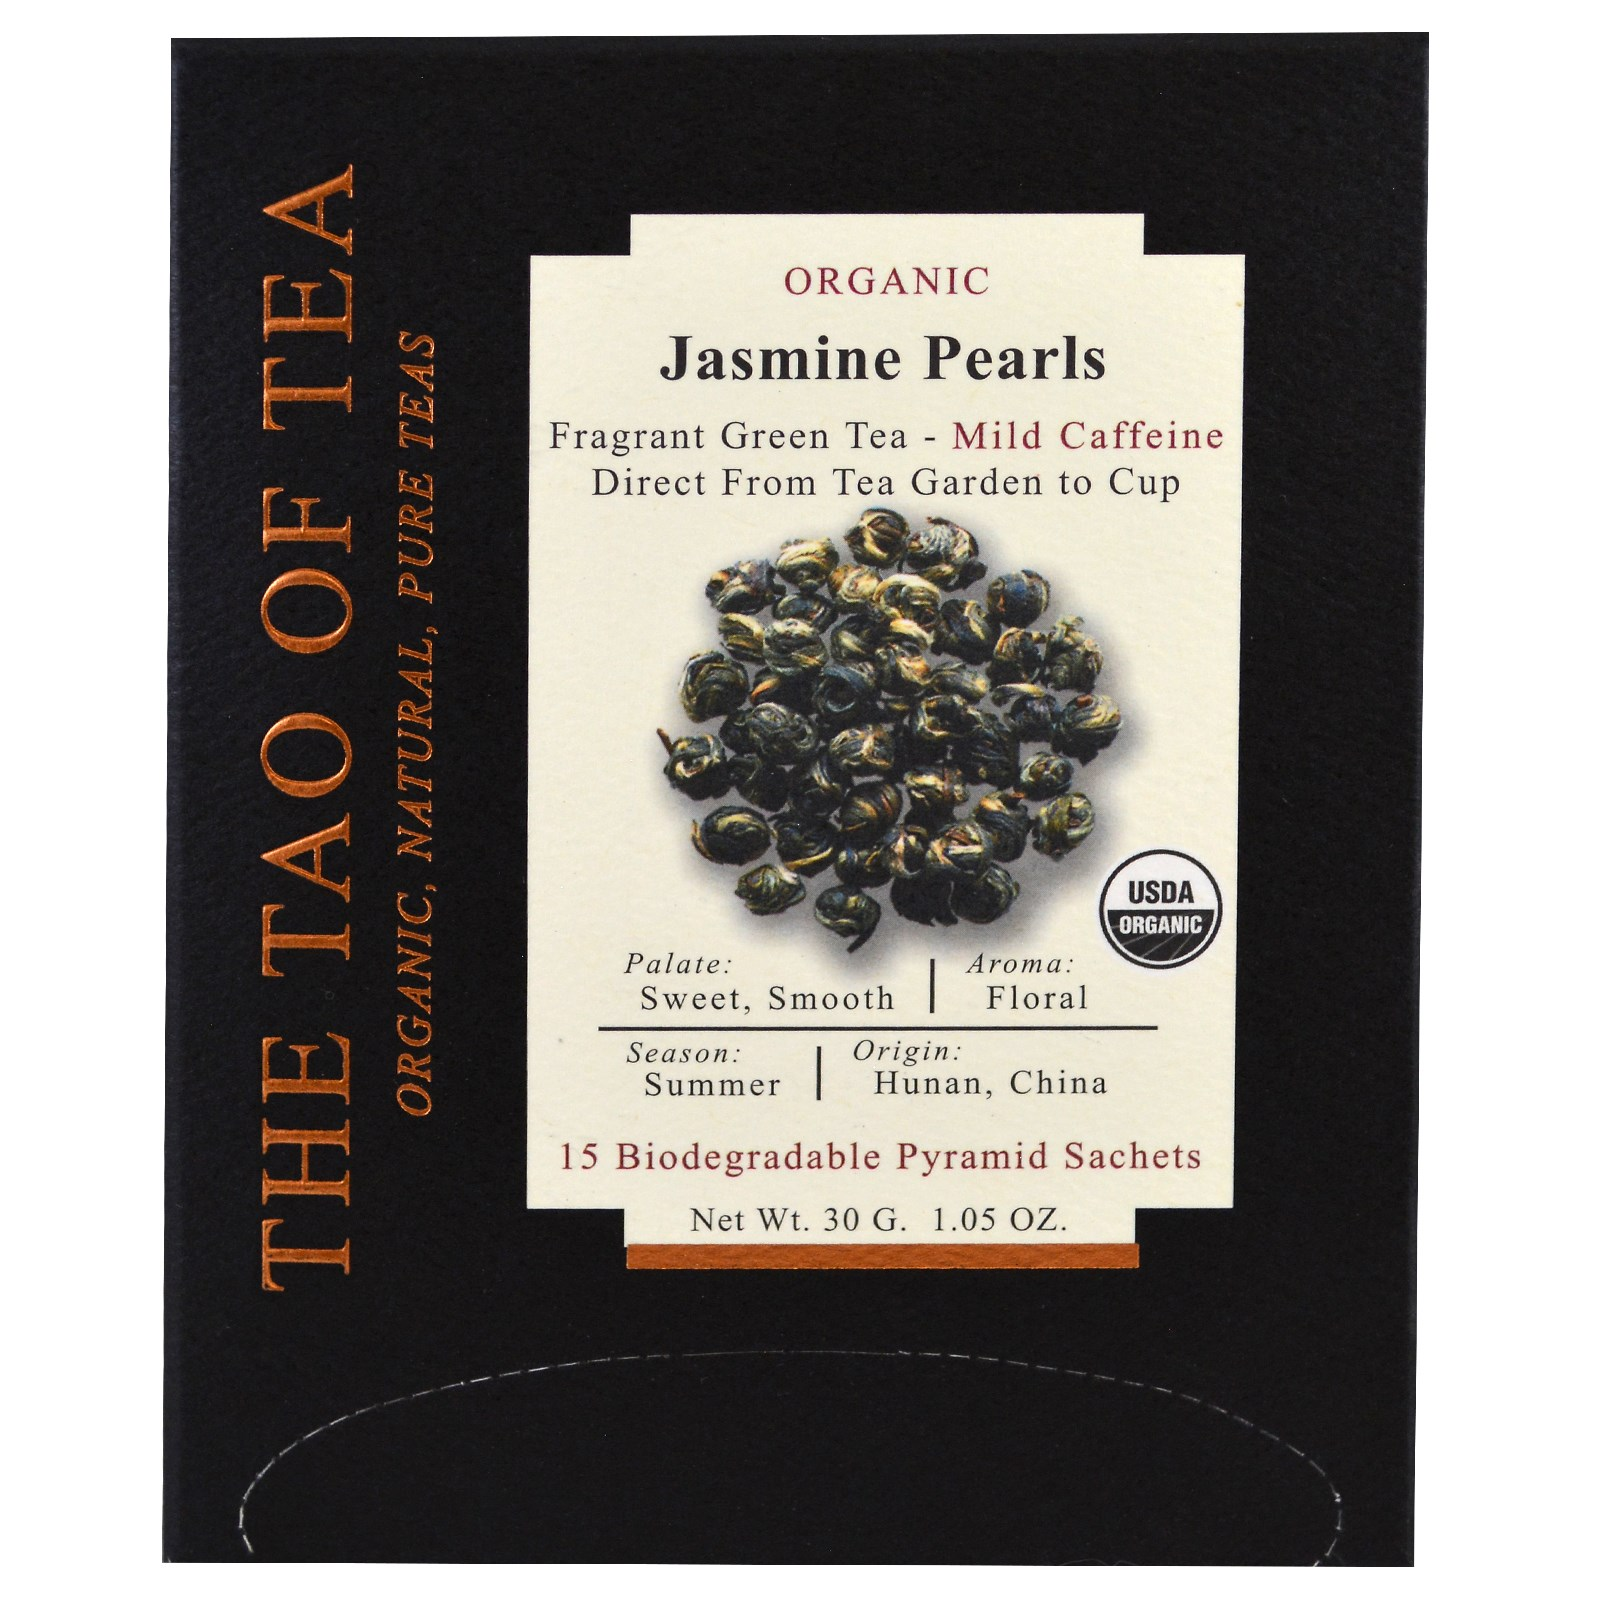 The Tao of Tea, Органический Jasmine Pearls, 15 пирамидок, 1,05 унц. (30 г)